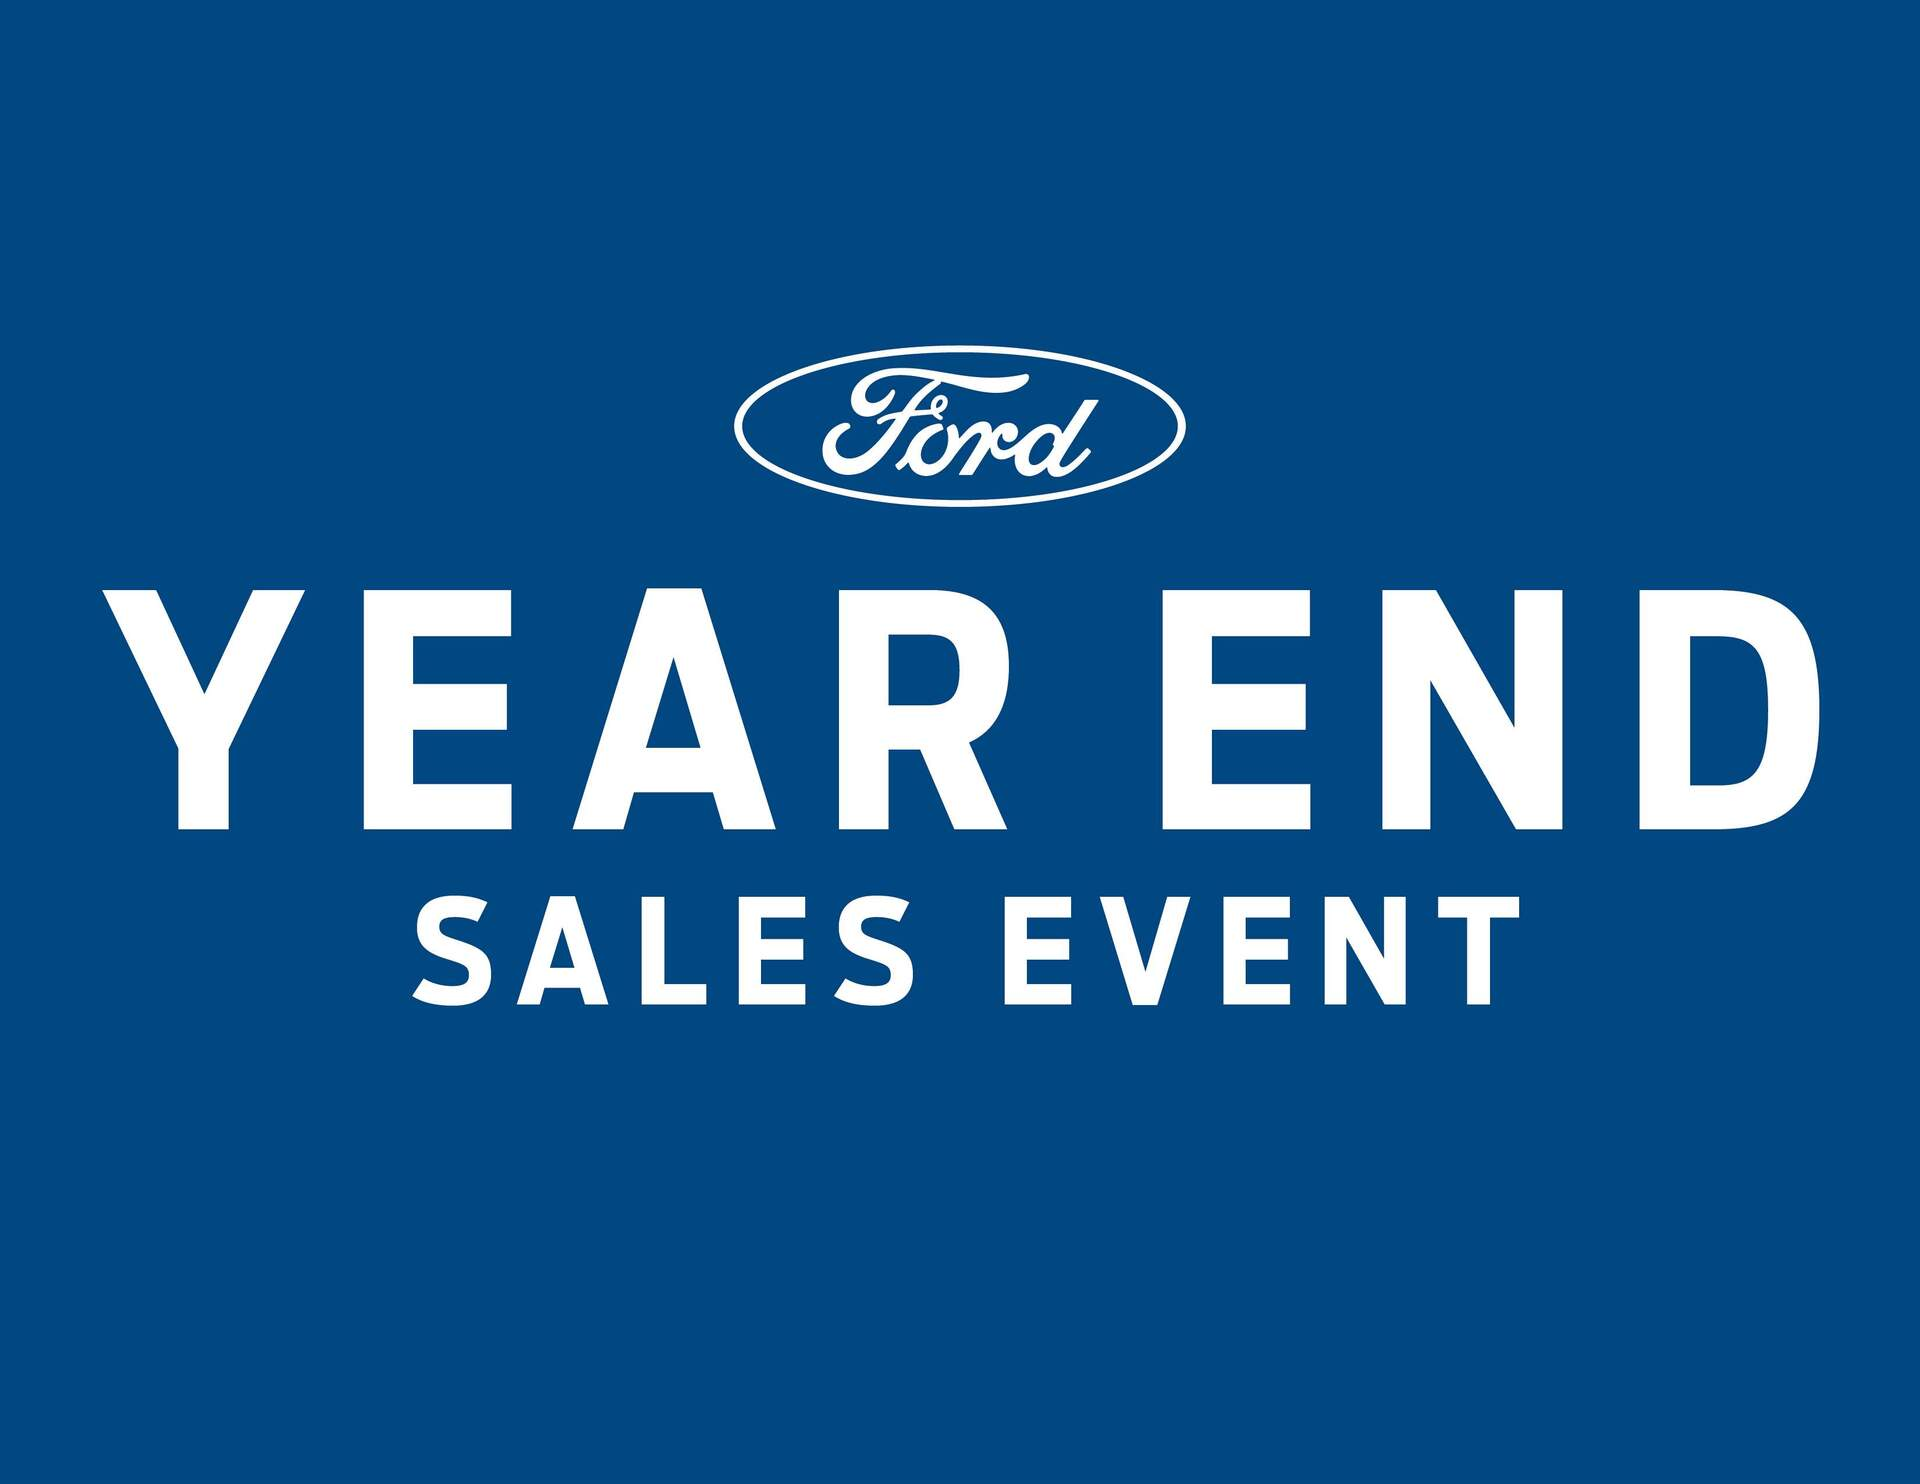 Ford Year End